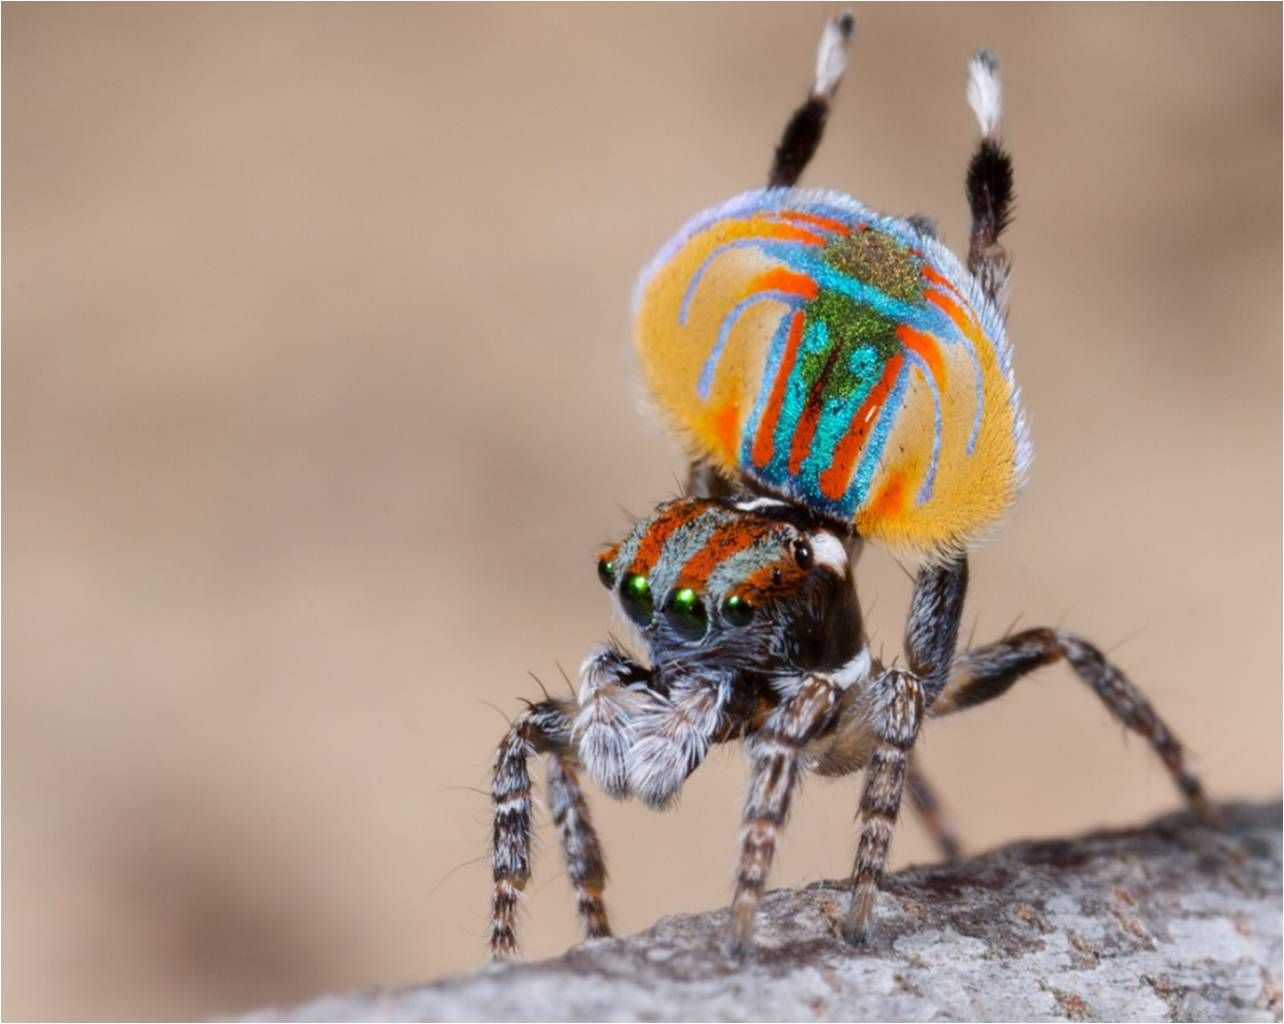 New Species Of Aussie Spider Is Named Sparklemuffin Dont You Agree Macrophotograph Printed Circuit Board Round O By Sciencephotos This One That No Could Be Threatened He Looks Like On His Way